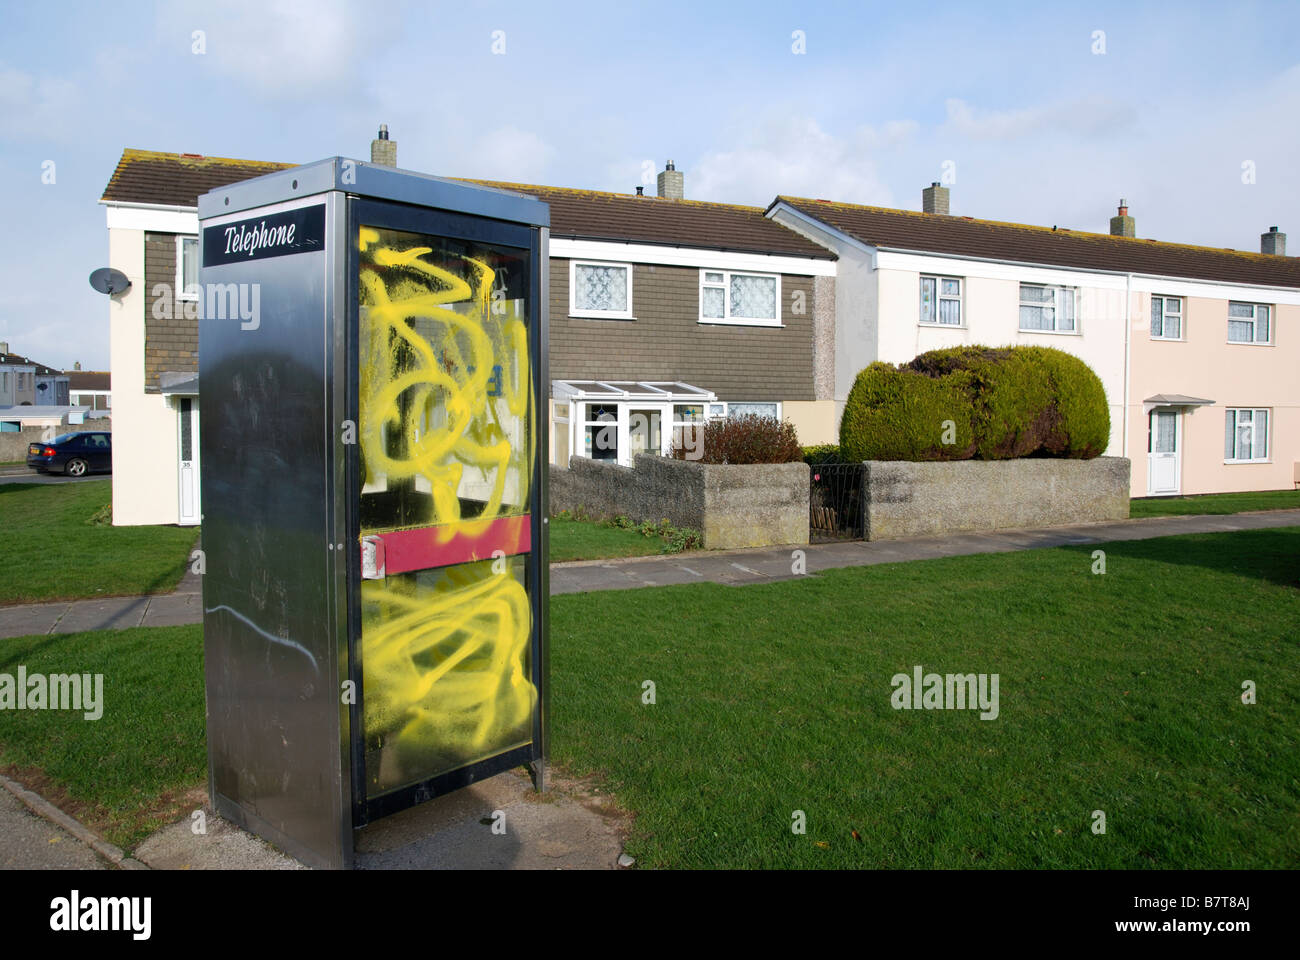 a vandalised telephone box on a council estate in redruth,cornwall,uk - Stock Image